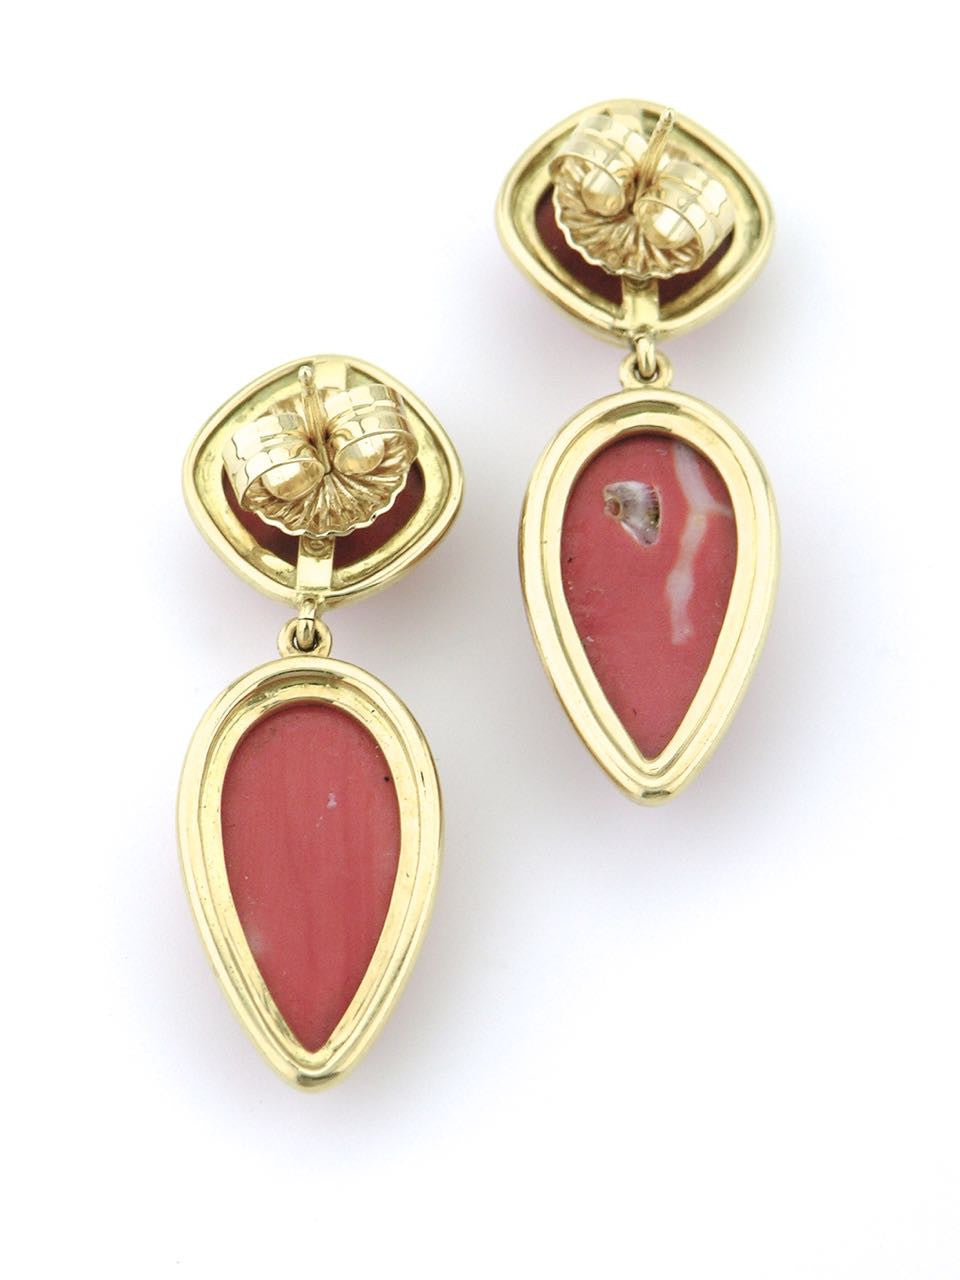 Tony White gold and coral drop earrings